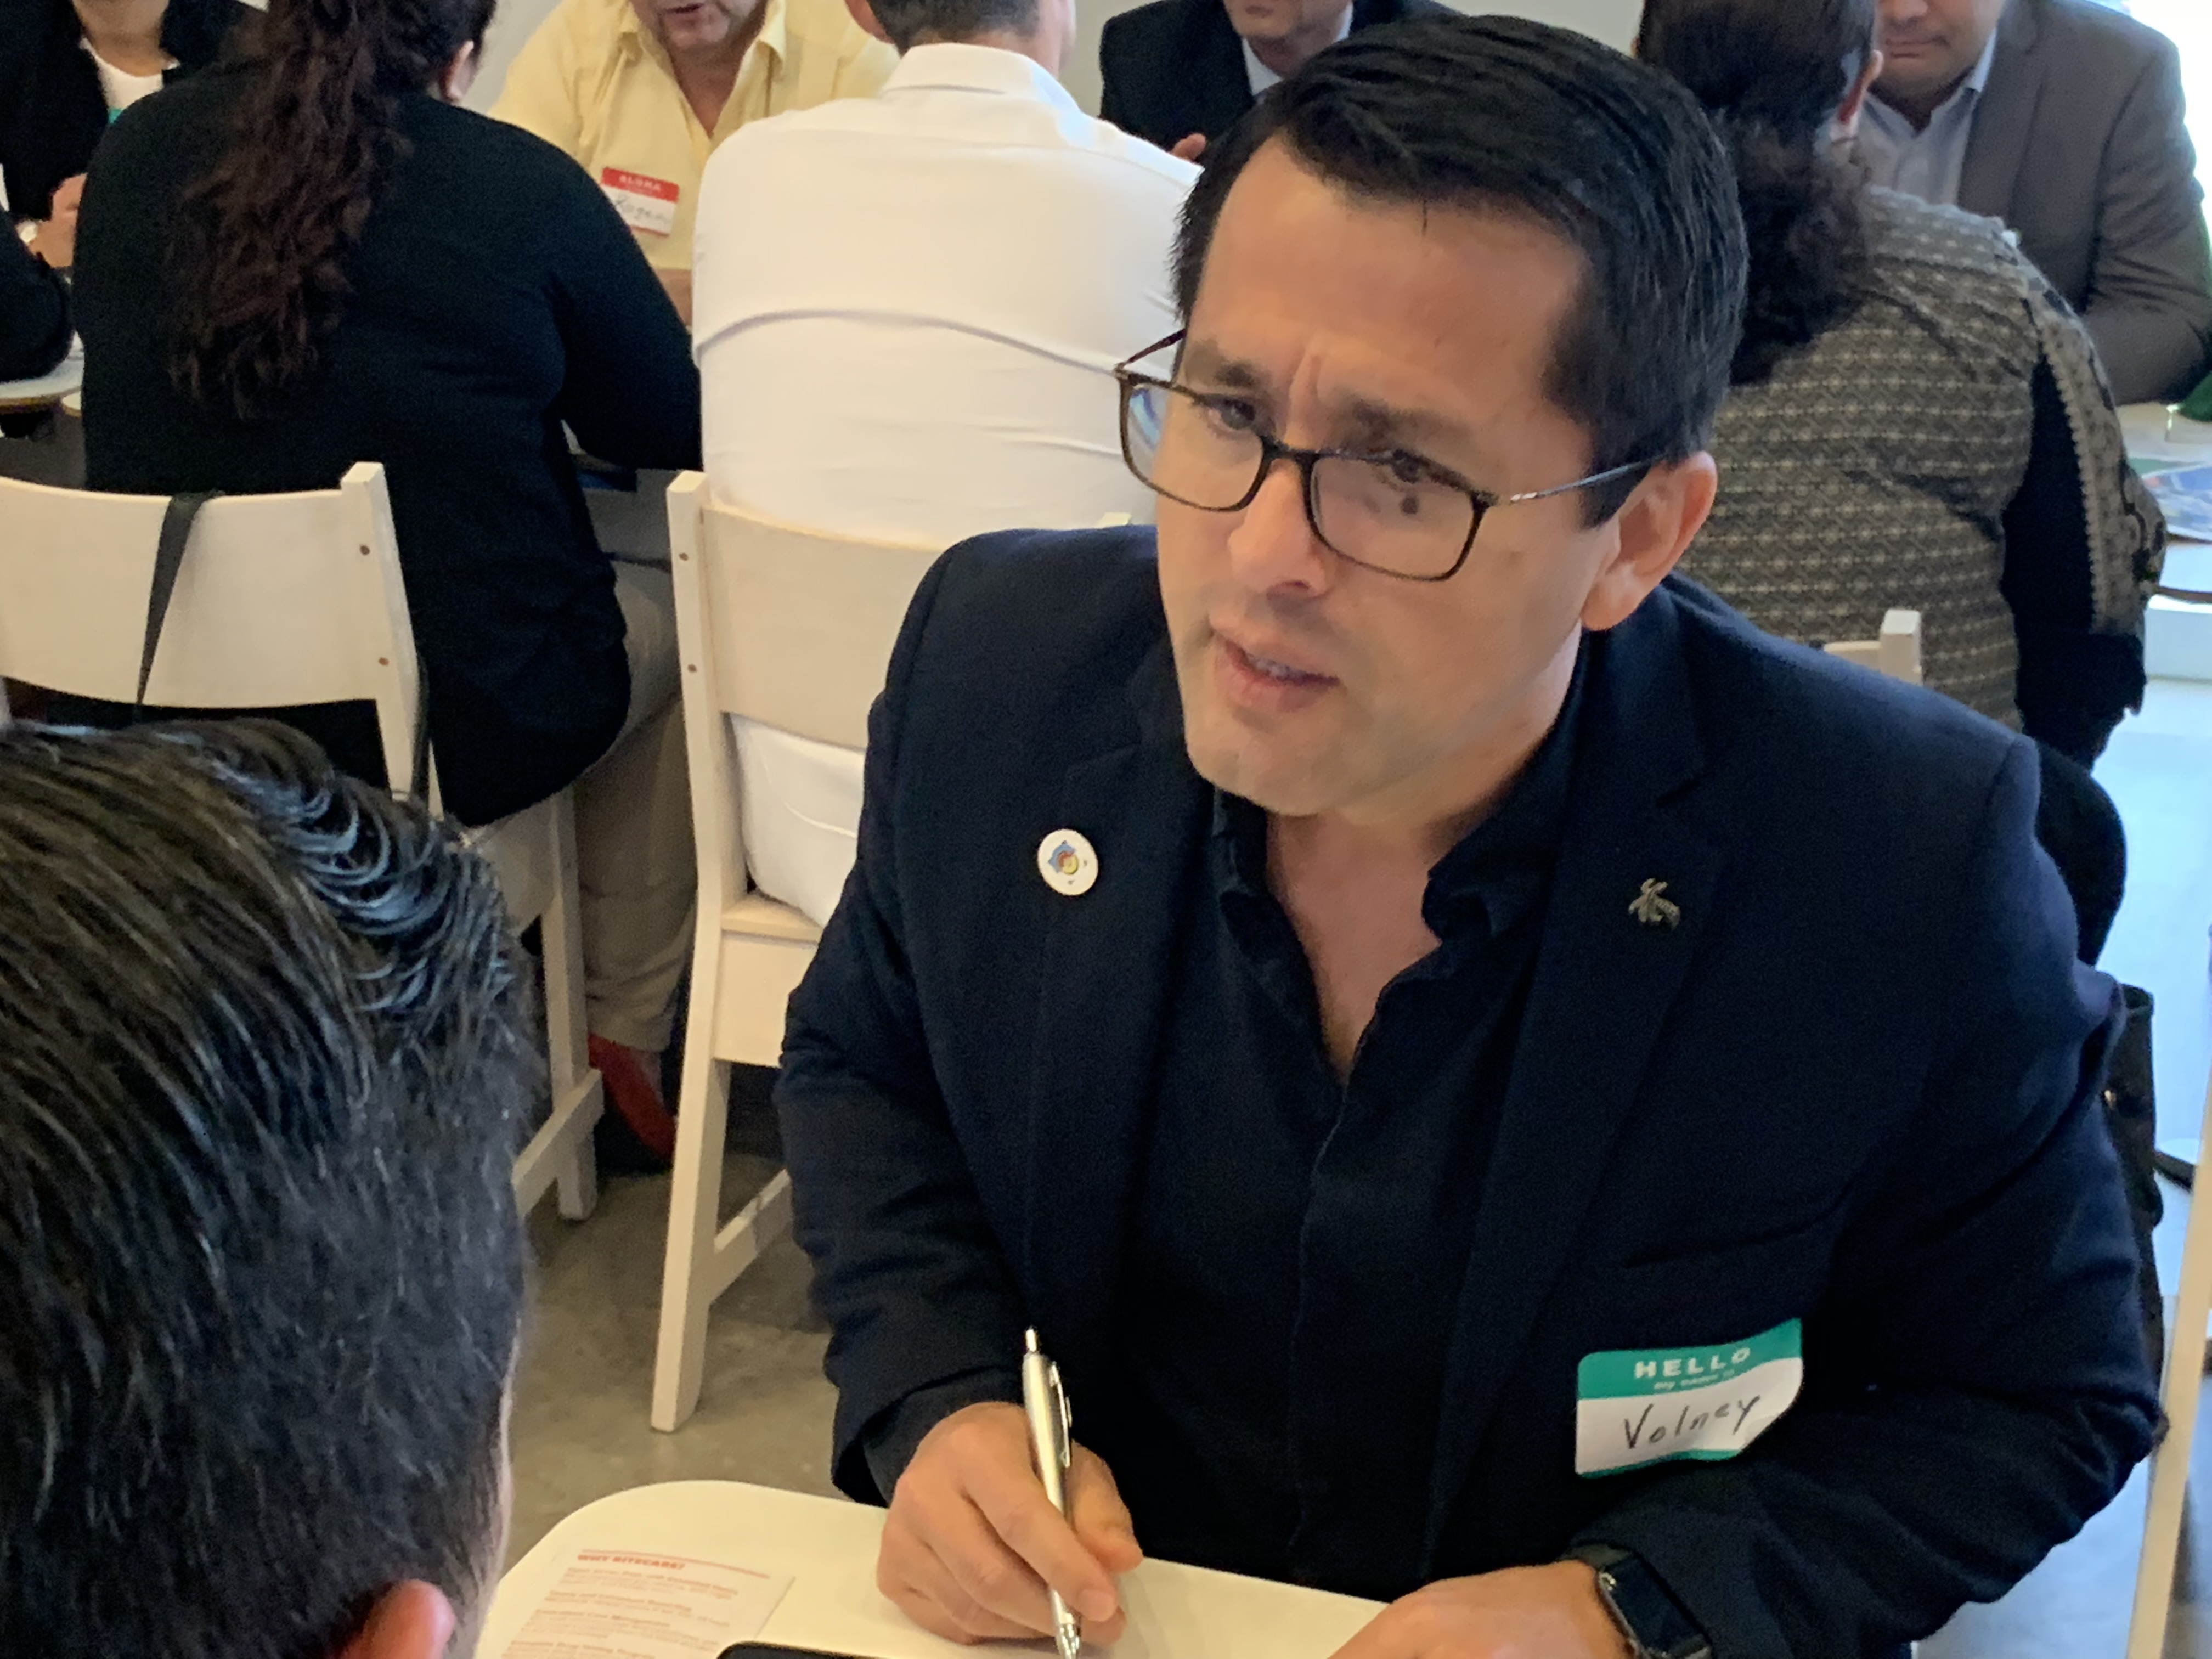 Doral Chamber of Commerce IKEA Speed Networking Event, DCC Member taking notes and writing down info about the other members company.